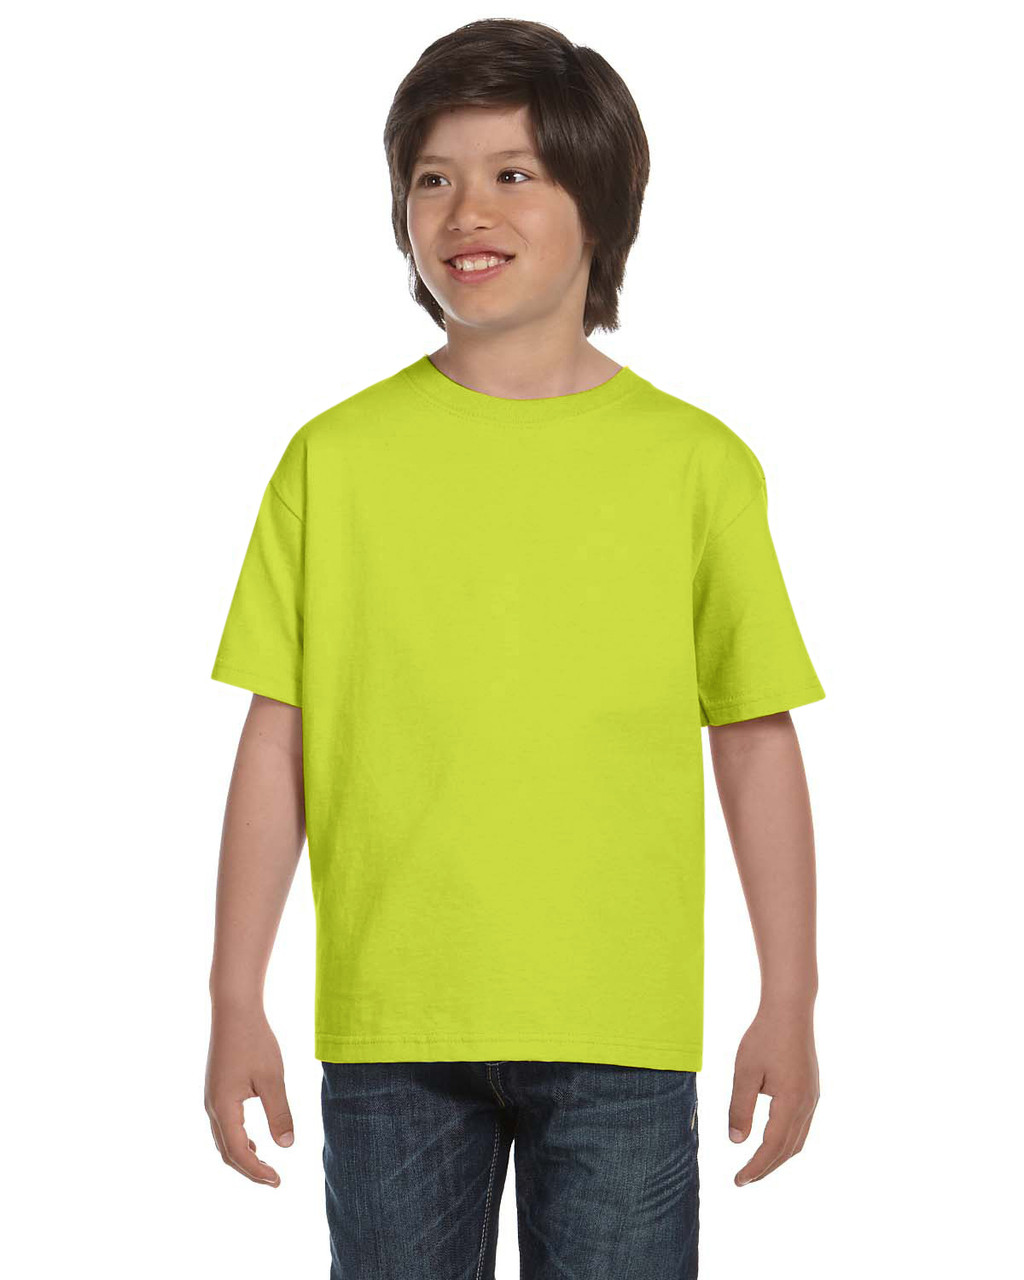 Safety Green - G800B Gildan DryBlend 50/50 Youth T-Shirt | Blankclothing.ca